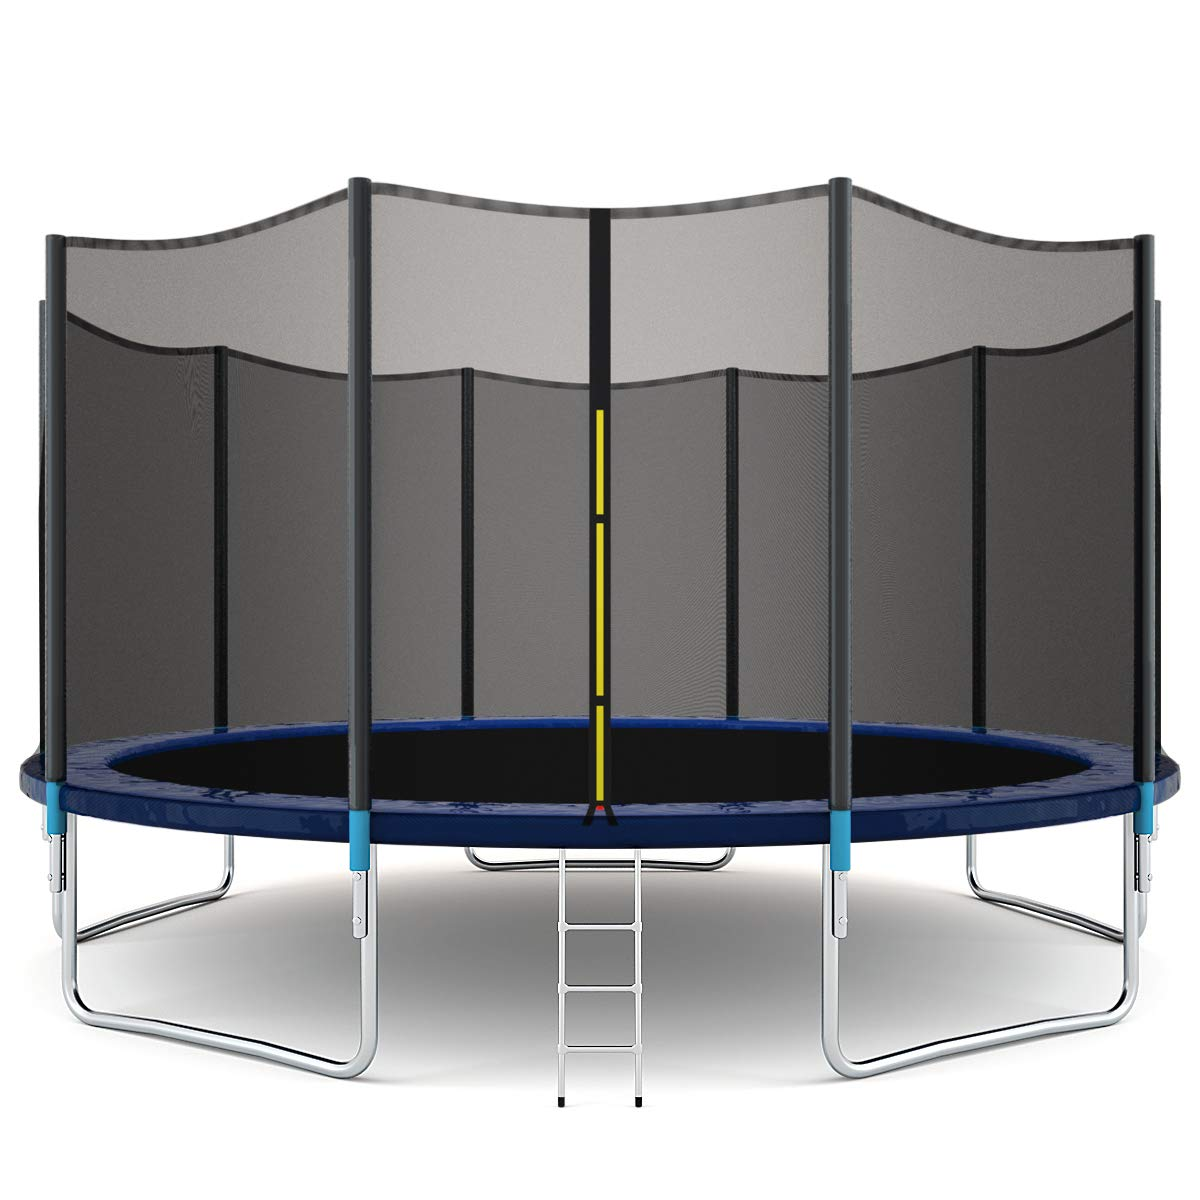 Giantex Trampoline Combo Bounce Jump Safety Enclosure Net W/Spring Pad Ladder, 15 FT by Giantex